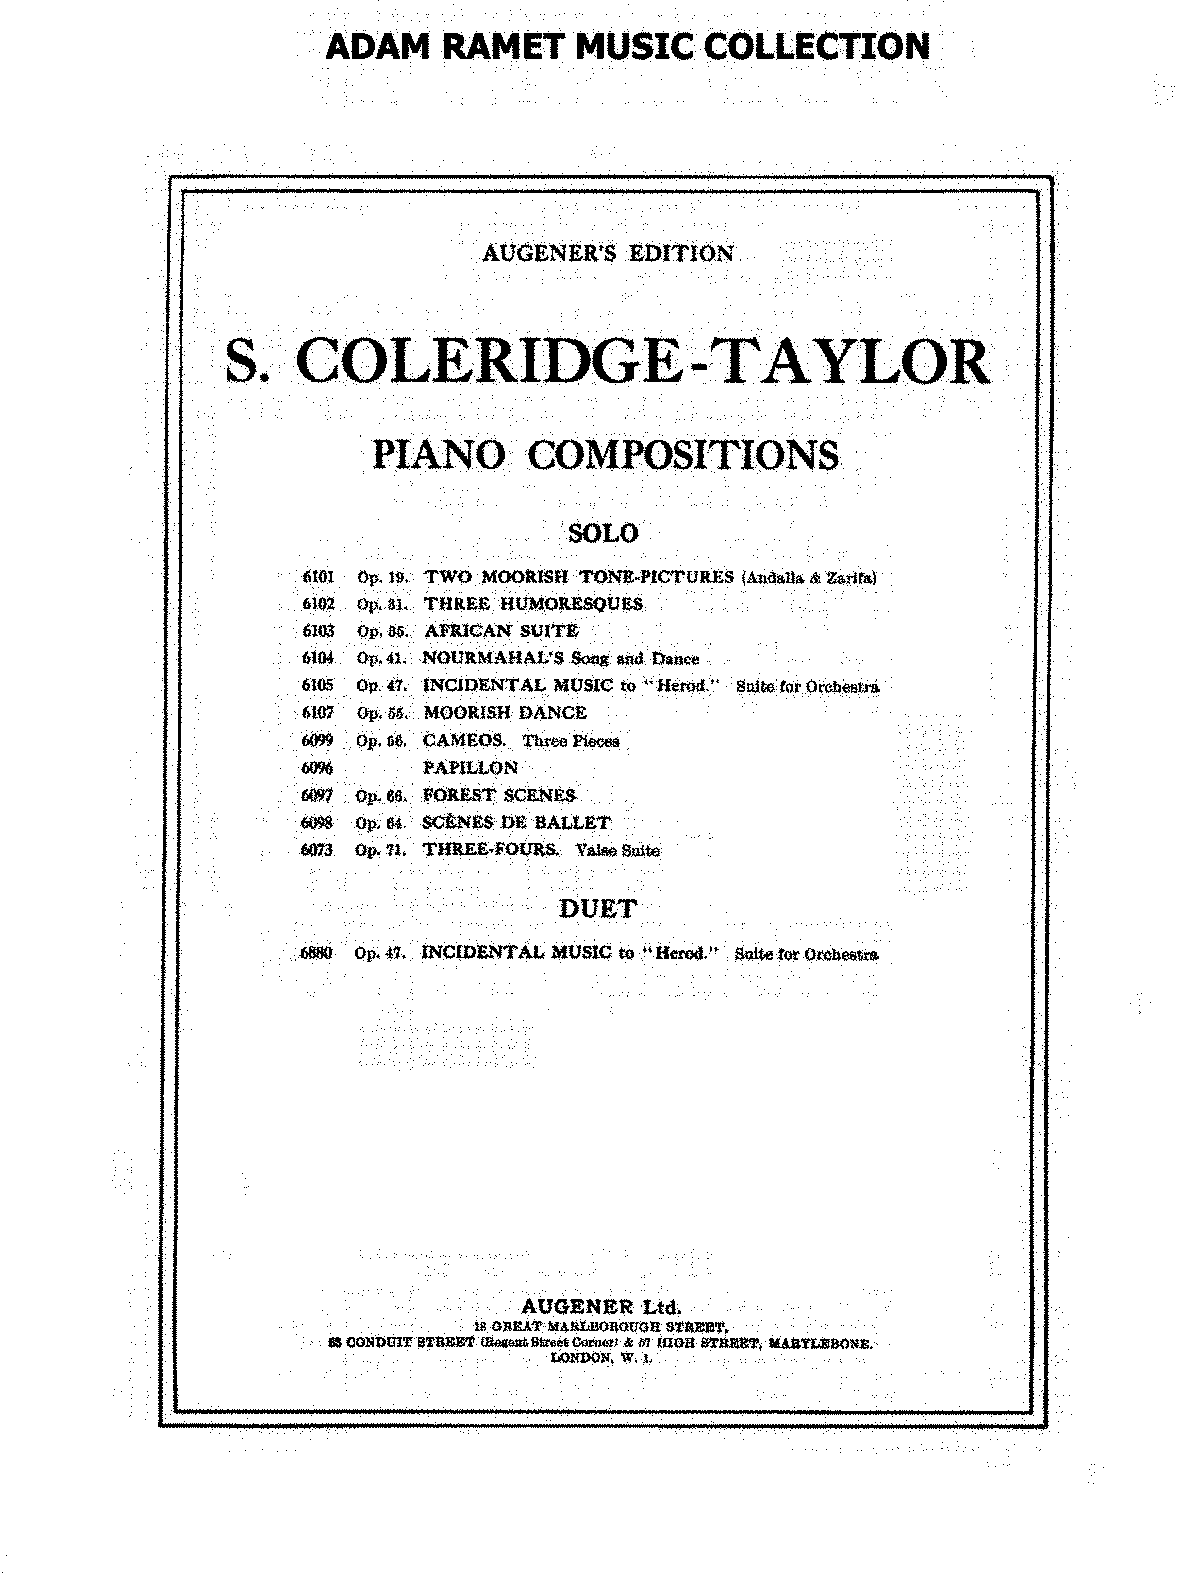 PMLP279444-COLERIDGE TAYLOR Three-Fours valse suite Op.71.pdf